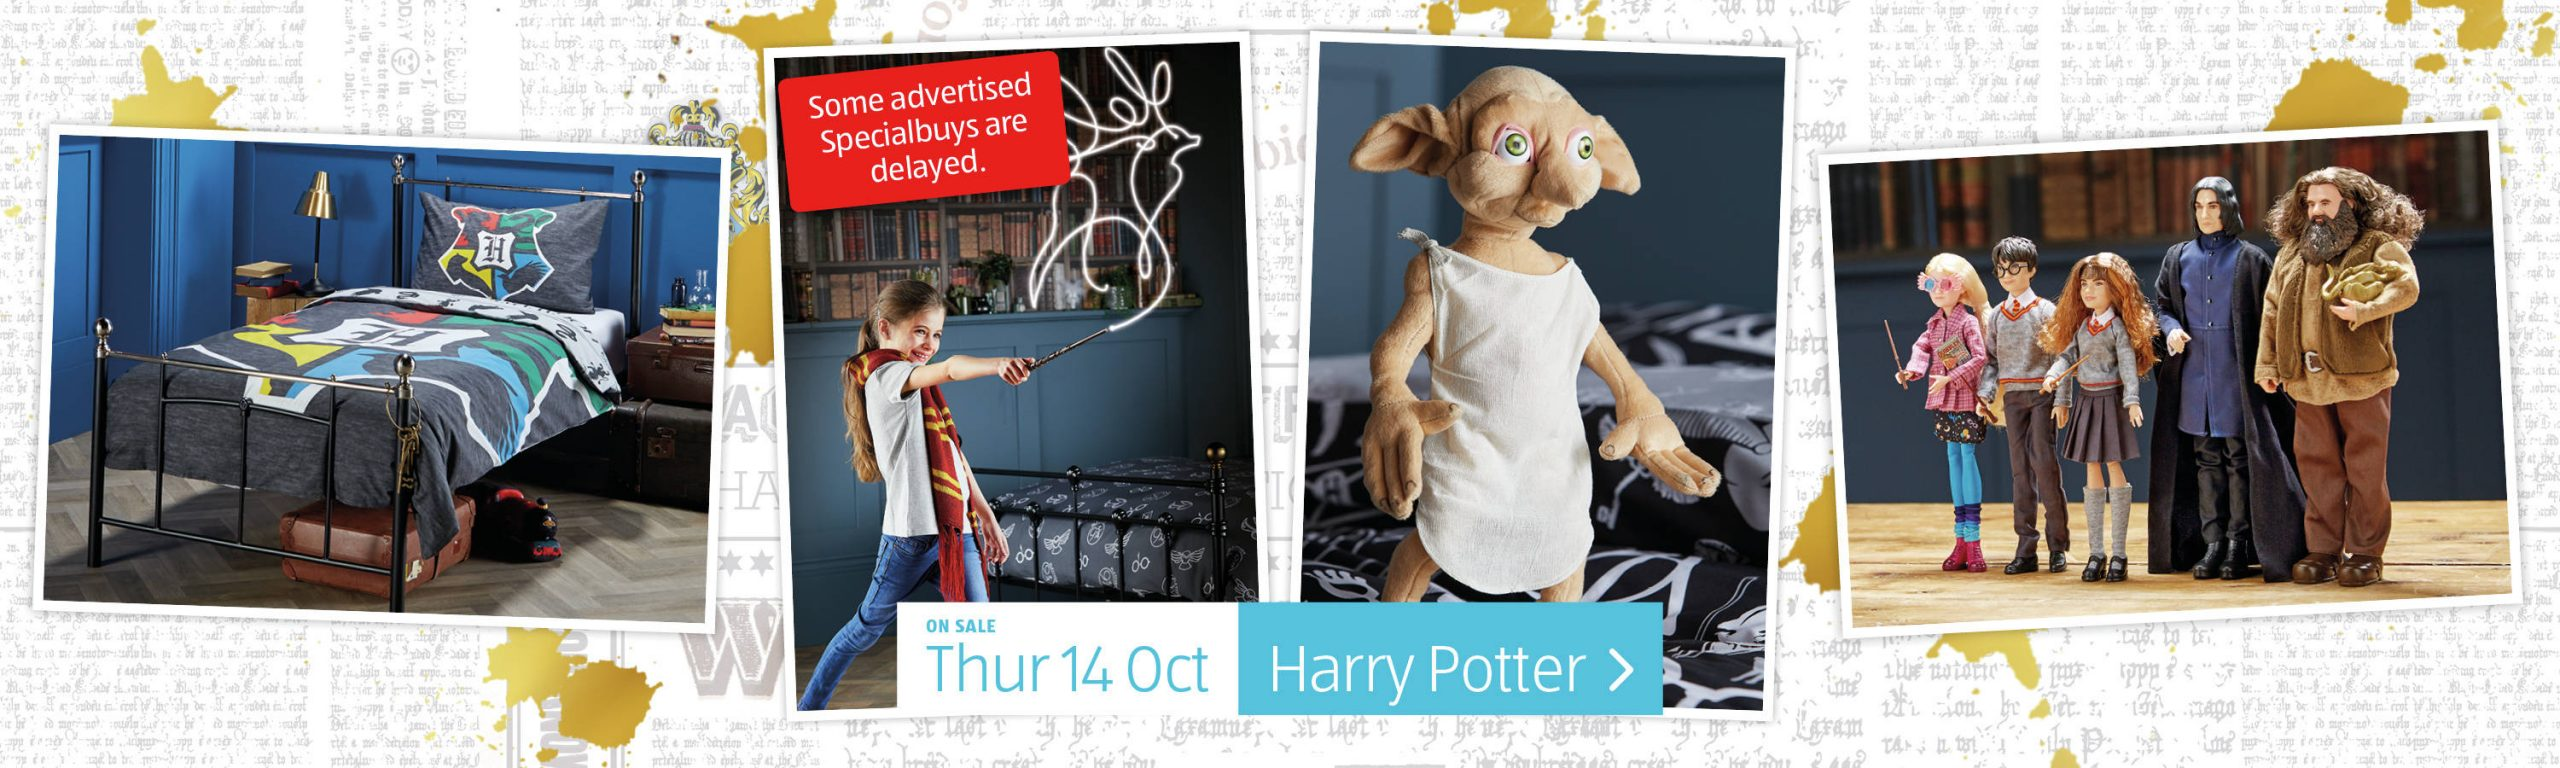 ALDI Harry Potter from 14th October 2021 ALDI Thursday Offers